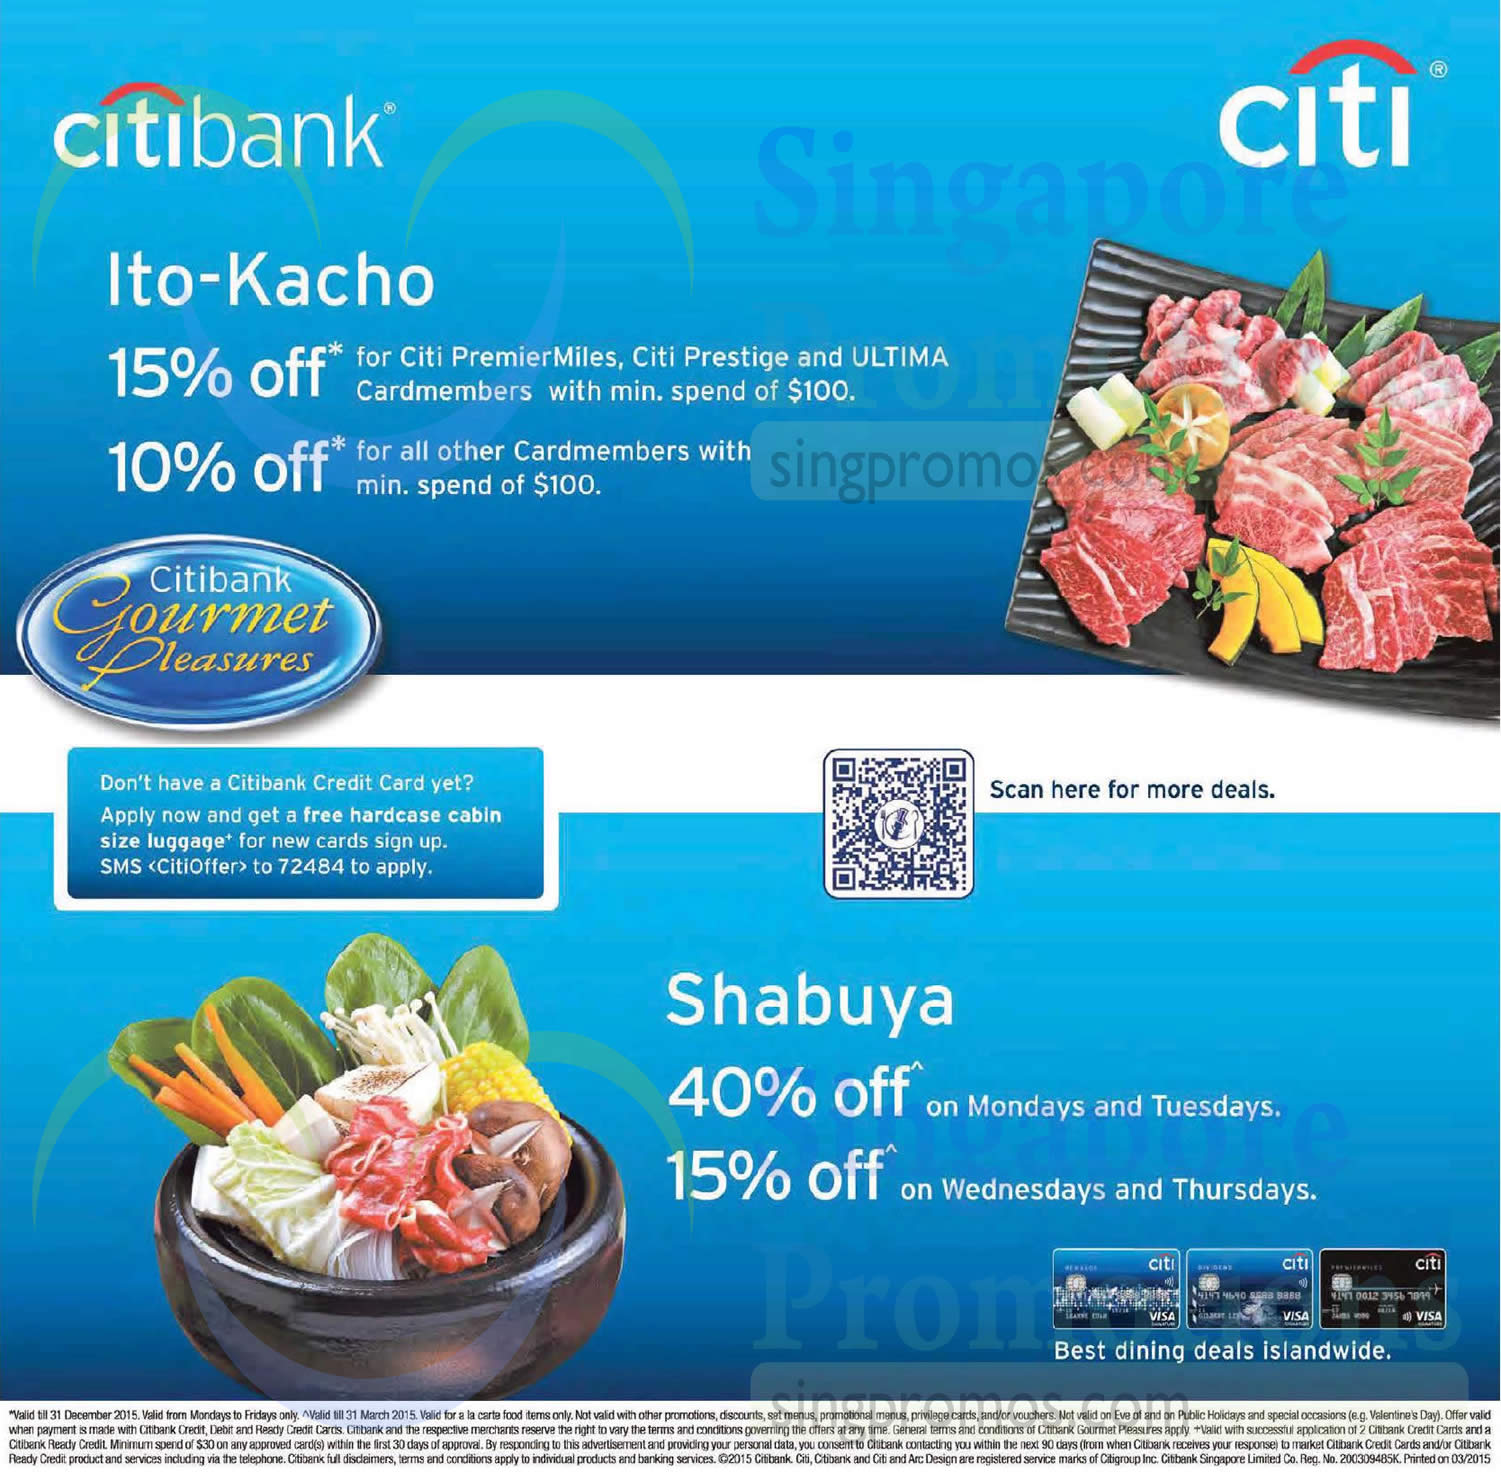 Citibank Promotions. Citibank is currently offering four promotions. Read our in-depth review of Citibank to see why Citibank scored stars out of 5. We like their perks for high balance customers, many fee-free atms, and global presence.